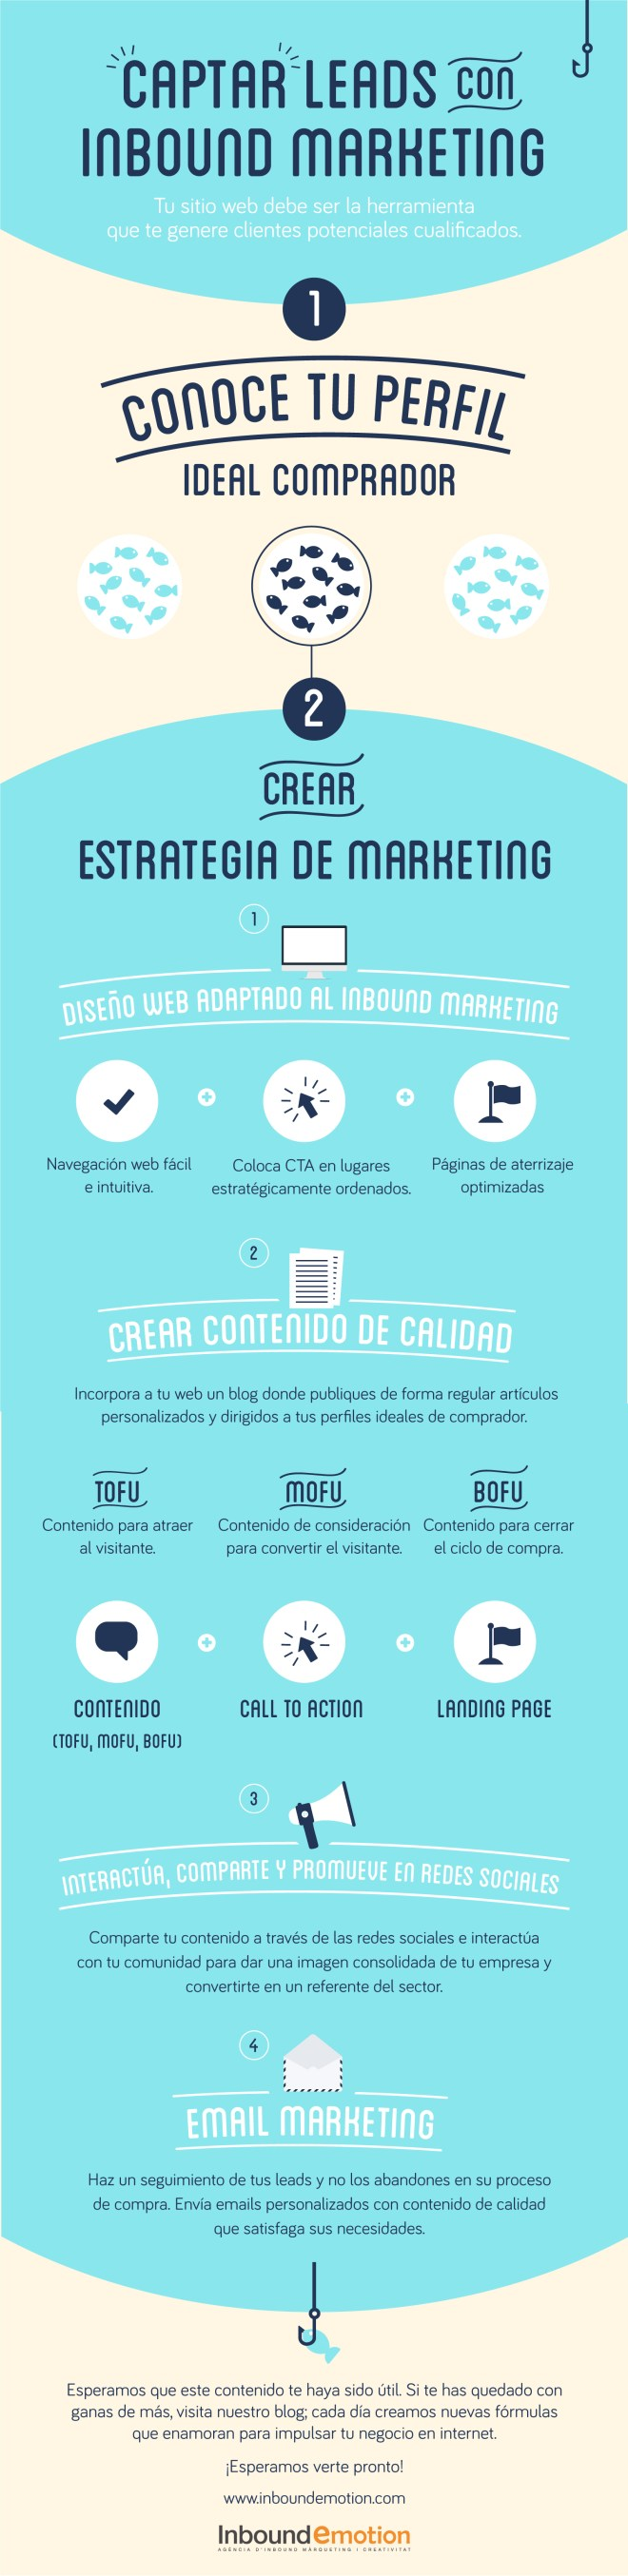 Captar leads con Inbound Marketing